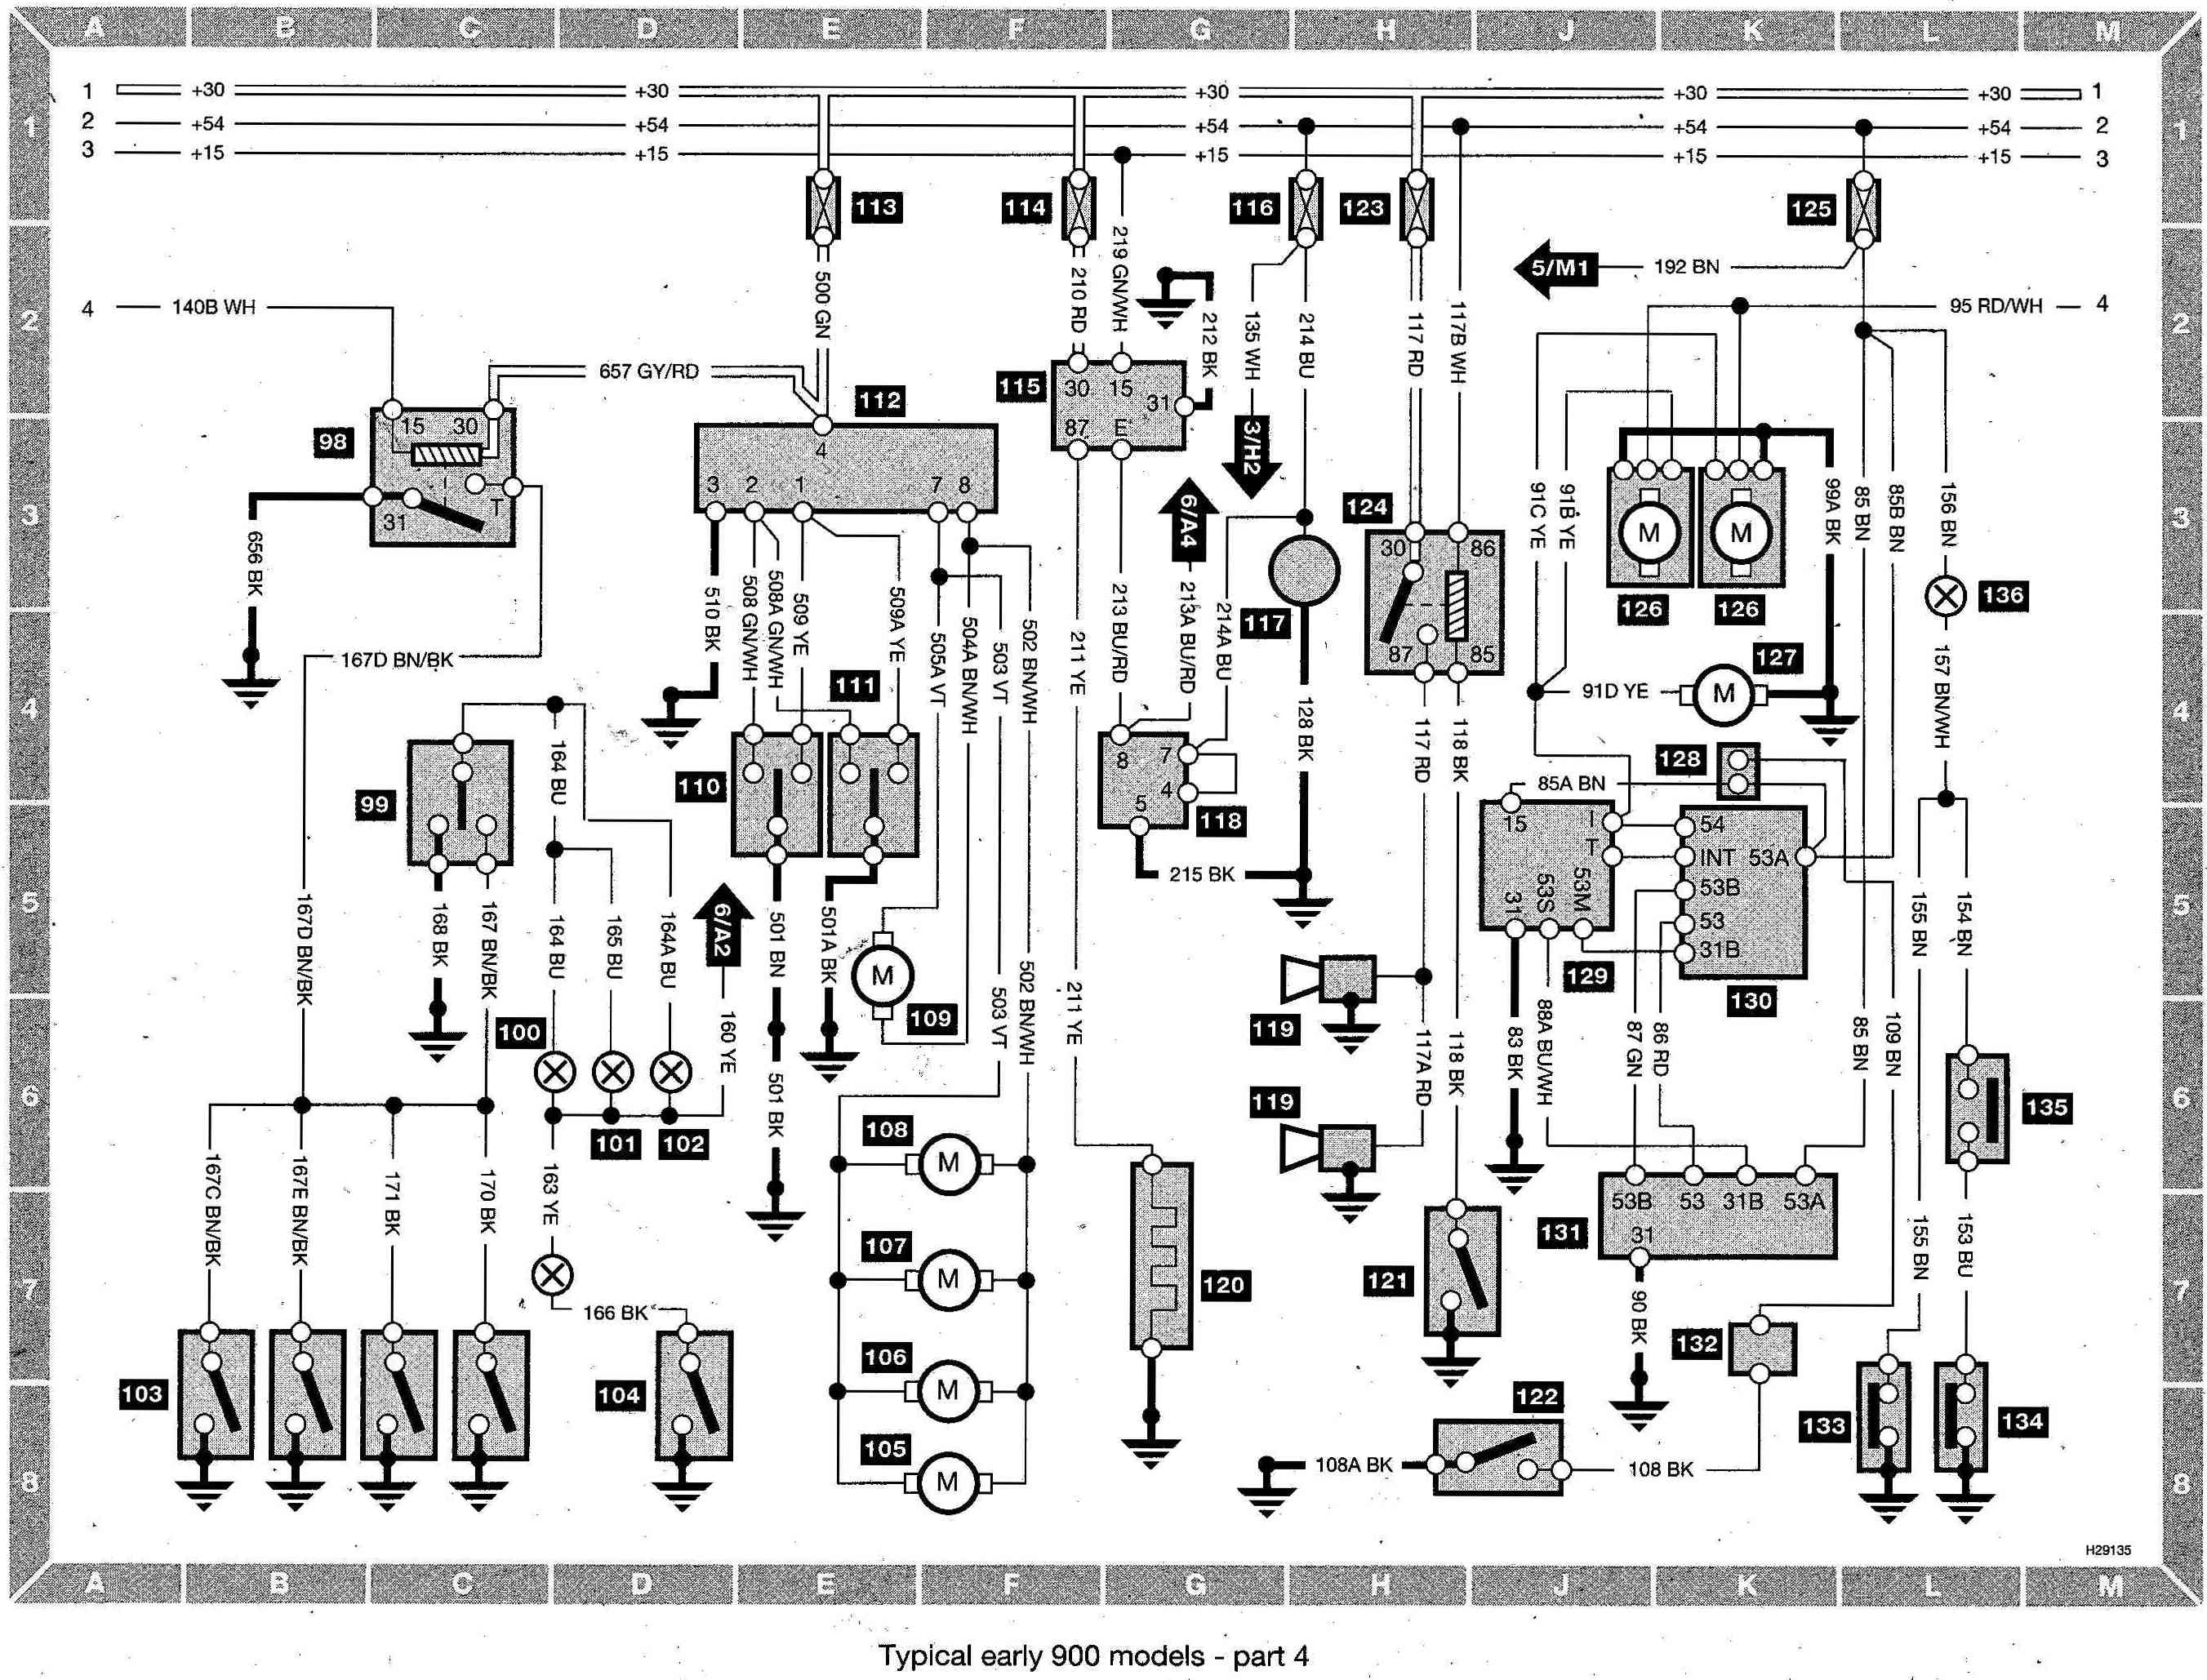 Saab 900 Wiring diagram (early models) part 4 index of saab saab 900 wiring diagram (early models) BU-353 Light Green at n-0.co